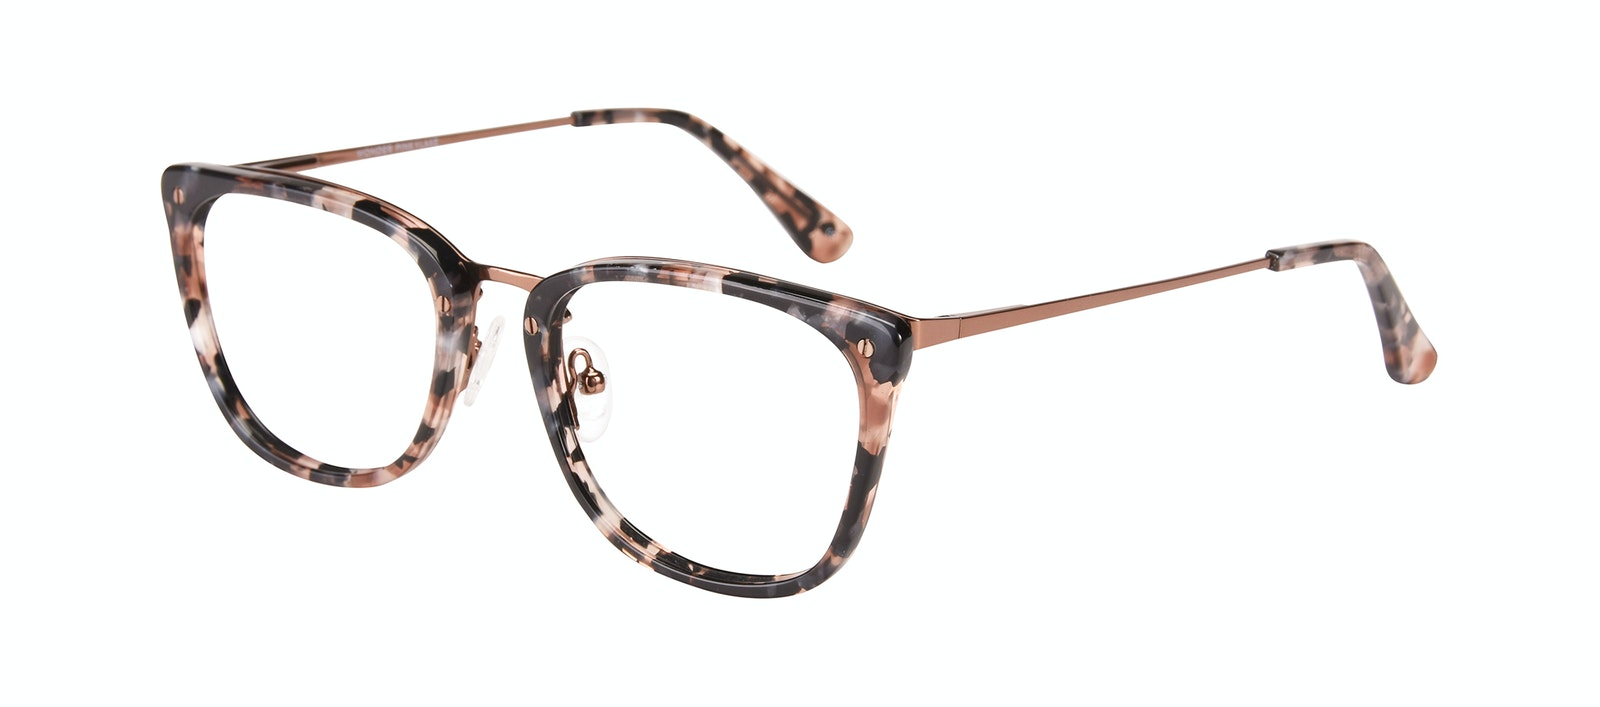 Affordable Fashion Glasses Rectangle Eyeglasses Women Wonder Pink Flake Tilt